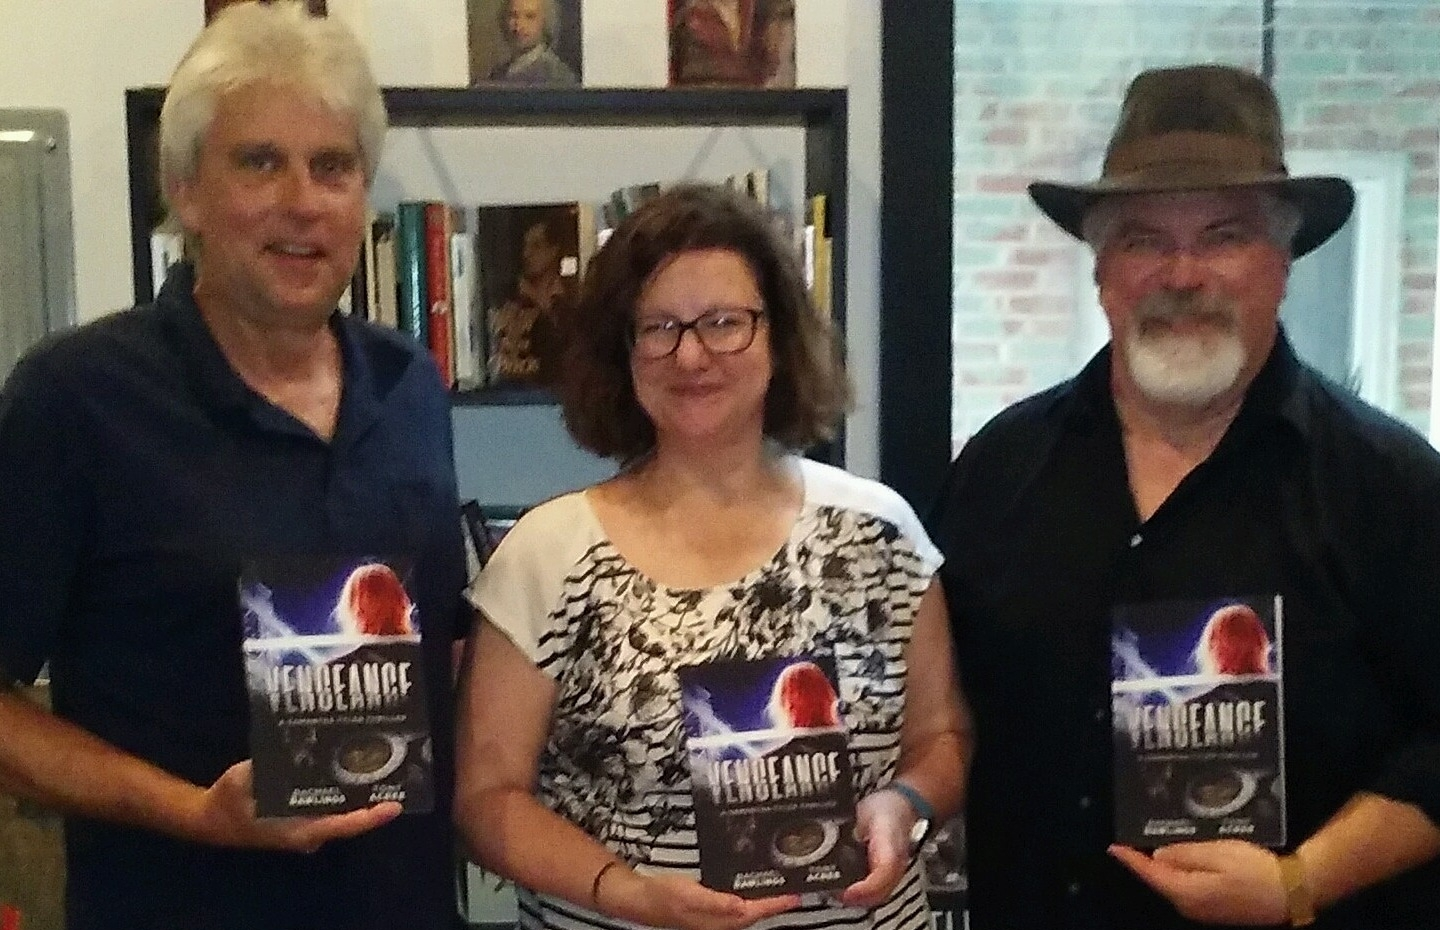 Authors Rachael Rawlings and Tony Acree launched their collaboration,   Vengeance: A Samantha Tyler Thriller  , at Nanny Goat Books in Louisville on June 8. Pictured are (l-r) Robb Hoff, Rawlings, and Acree